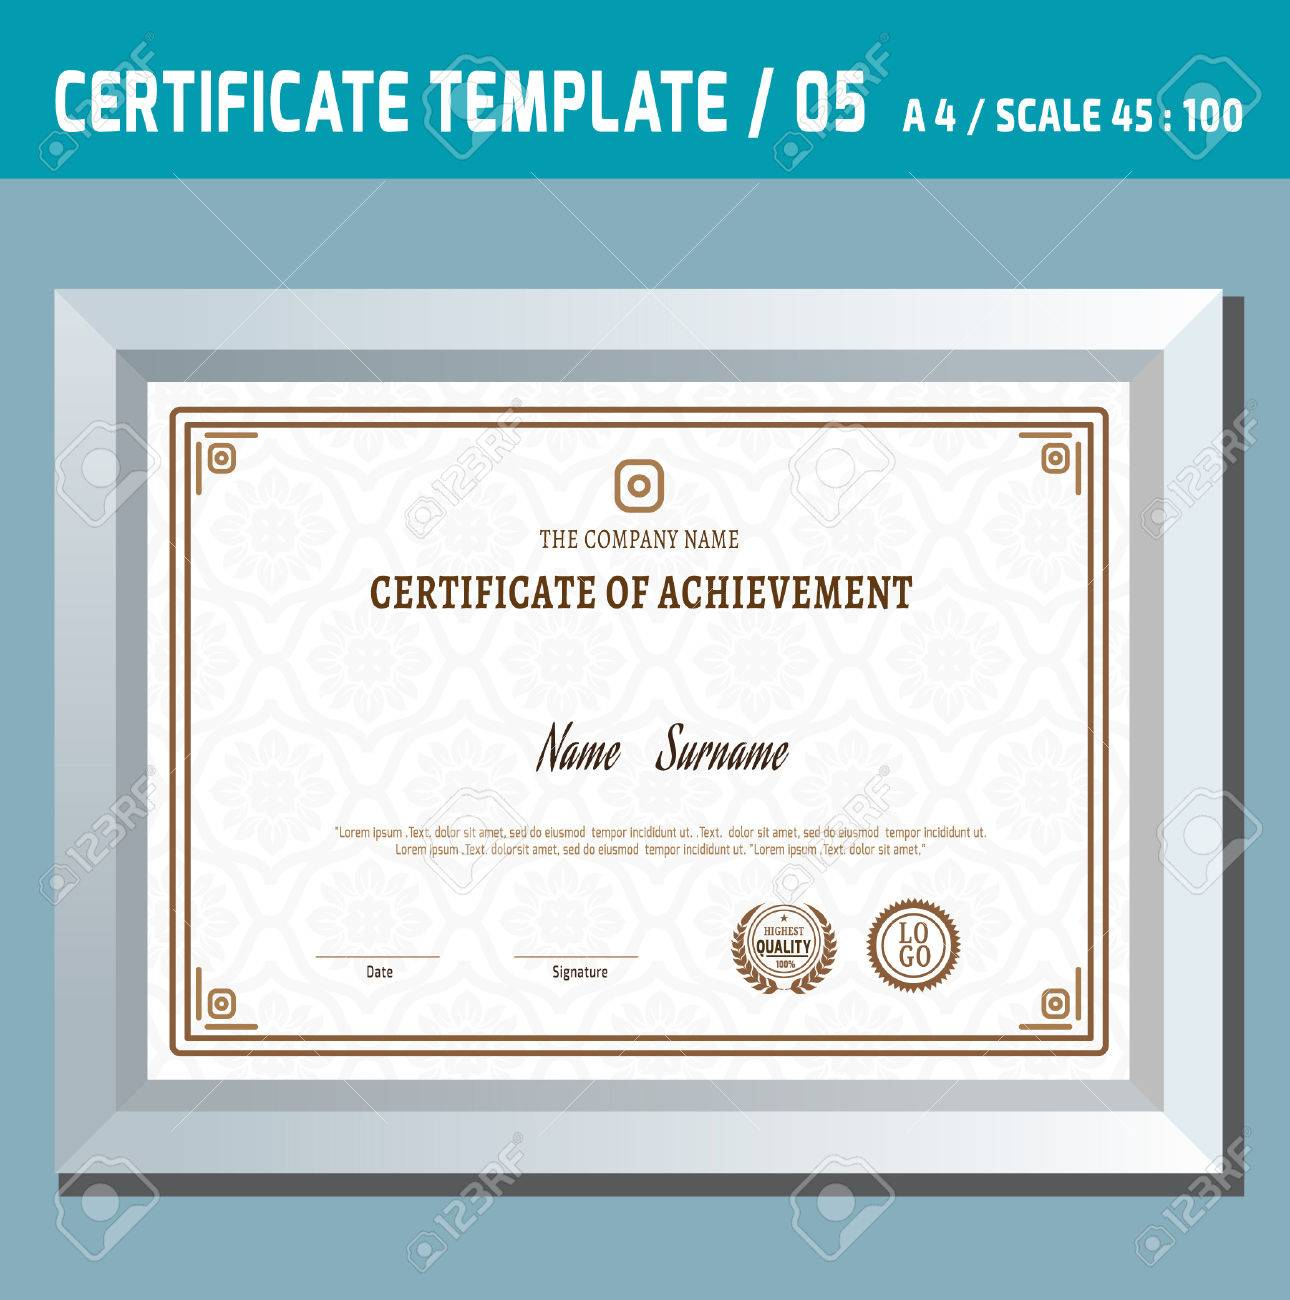 Certificate templatea4ctor design templatentage retro certificate templatea4ctor design templatentage retro frame diploma background stock yelopaper Gallery